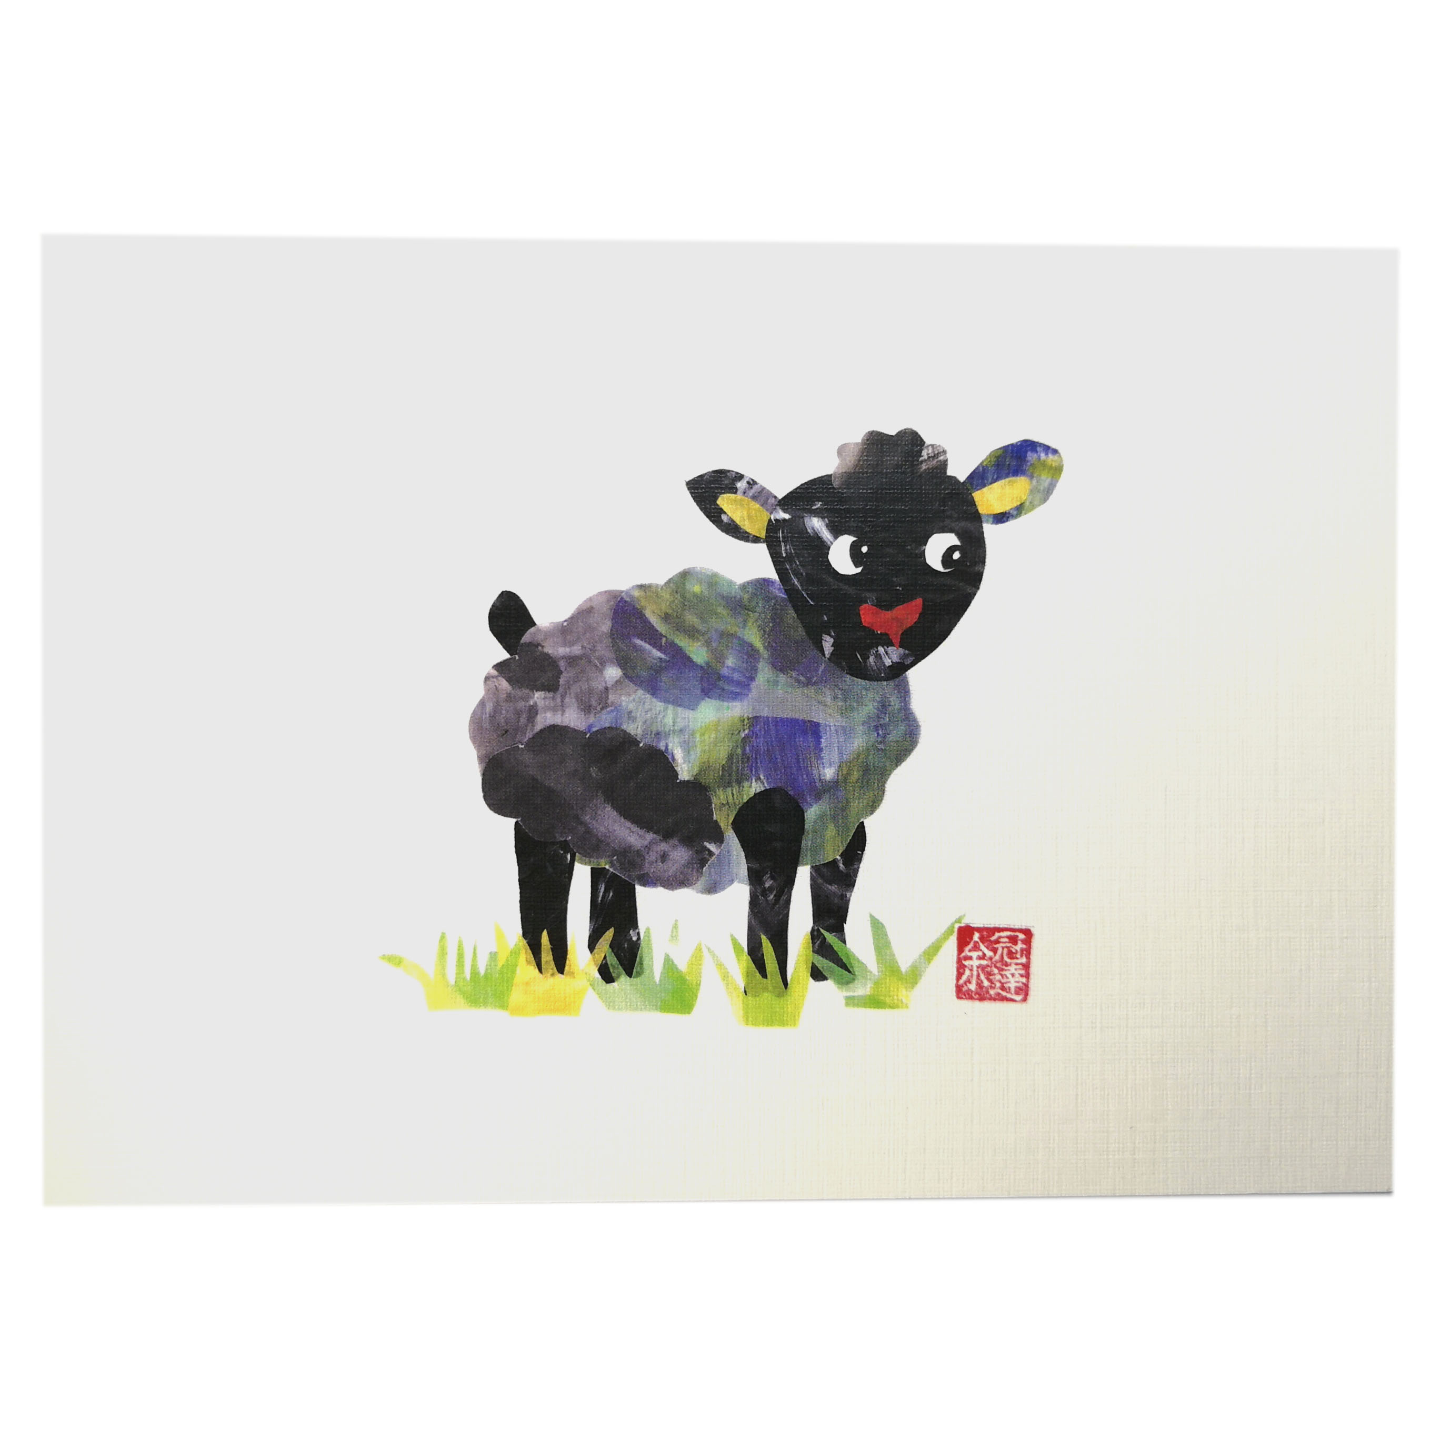 Zodiac Postcard Sheep by Patrick Yee